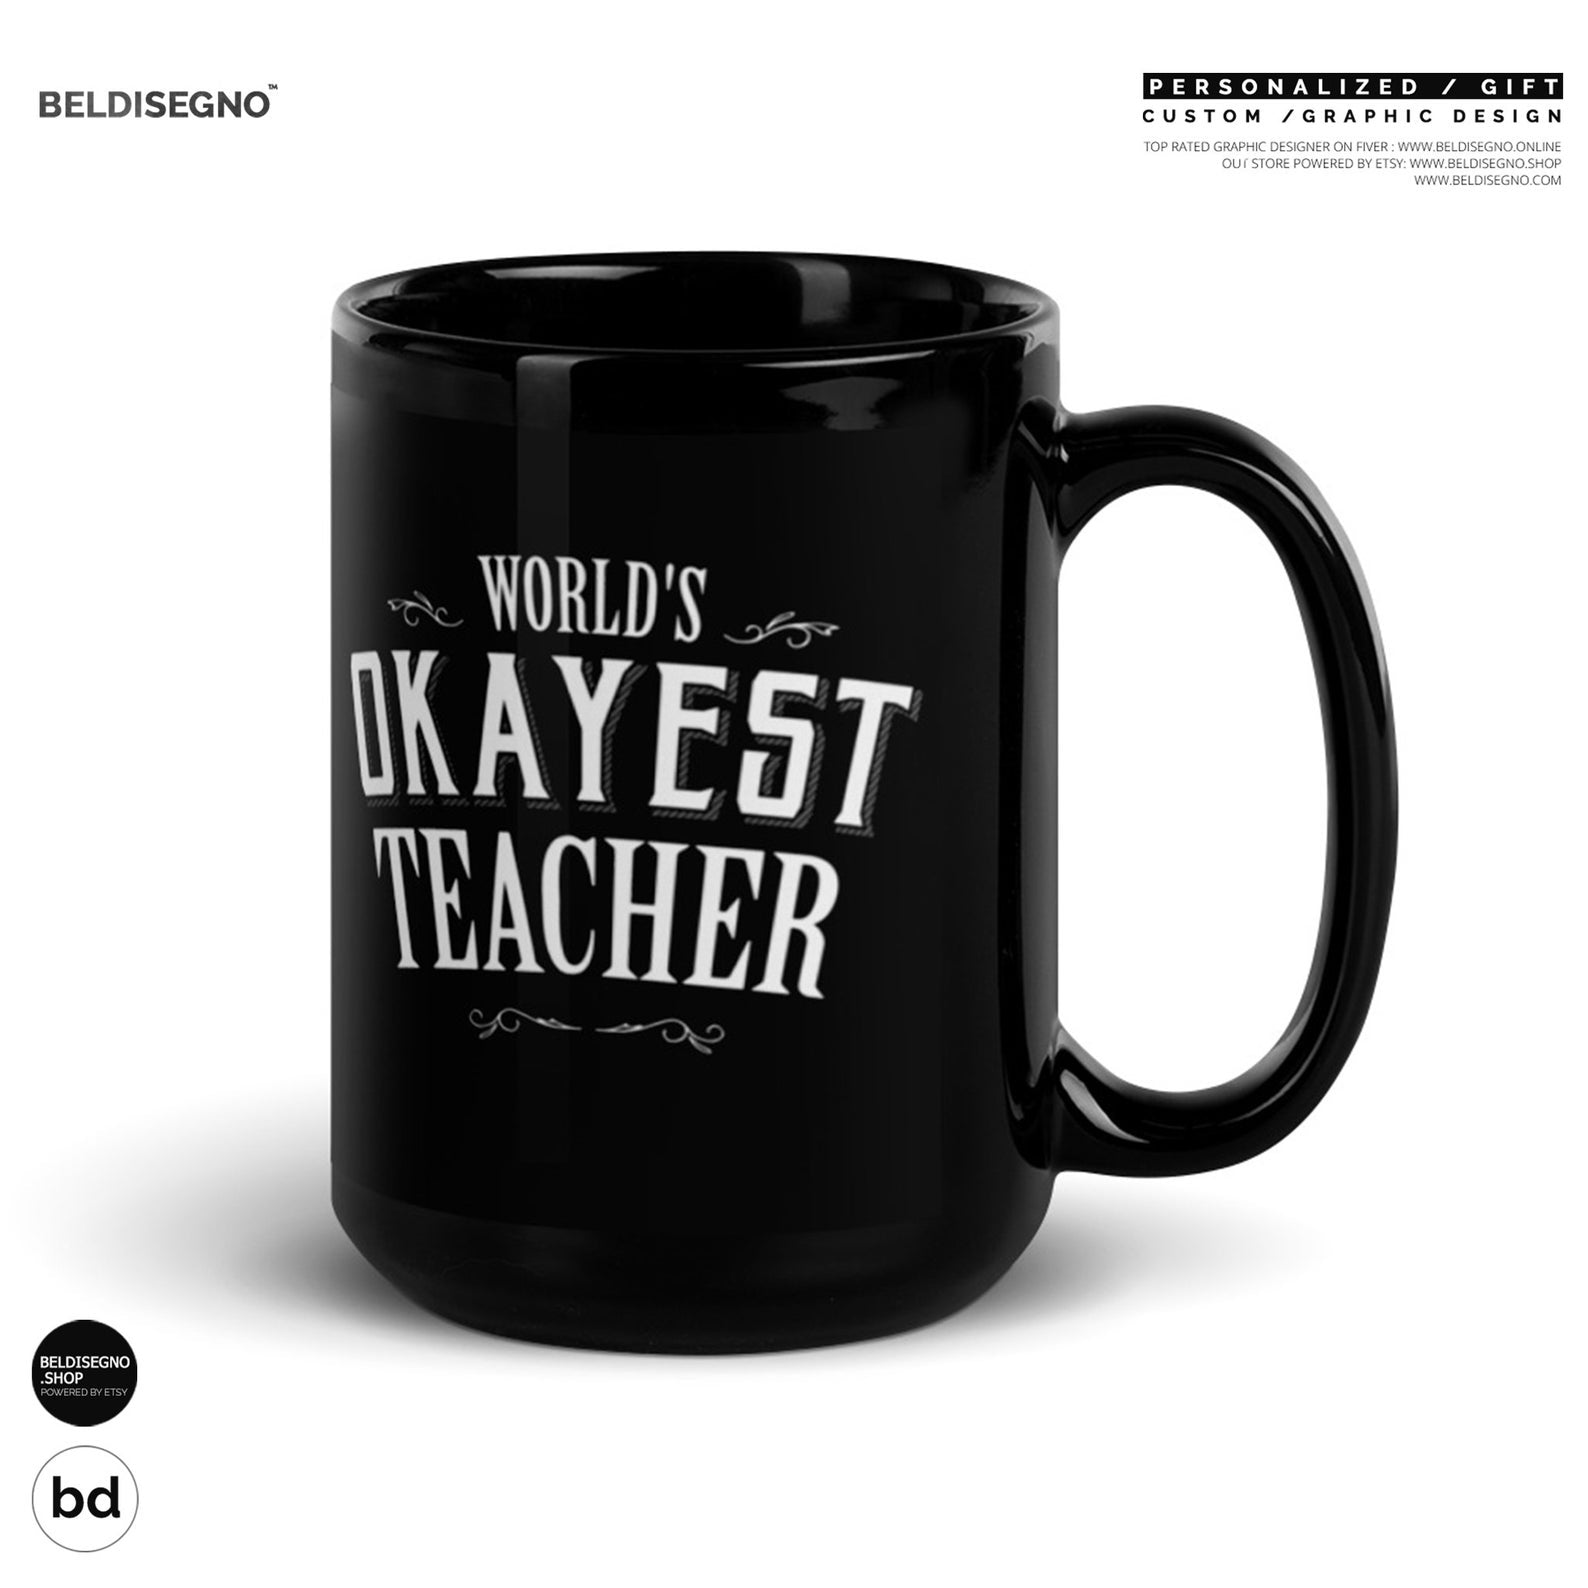 World's Okayest Teacher Coffee Mug